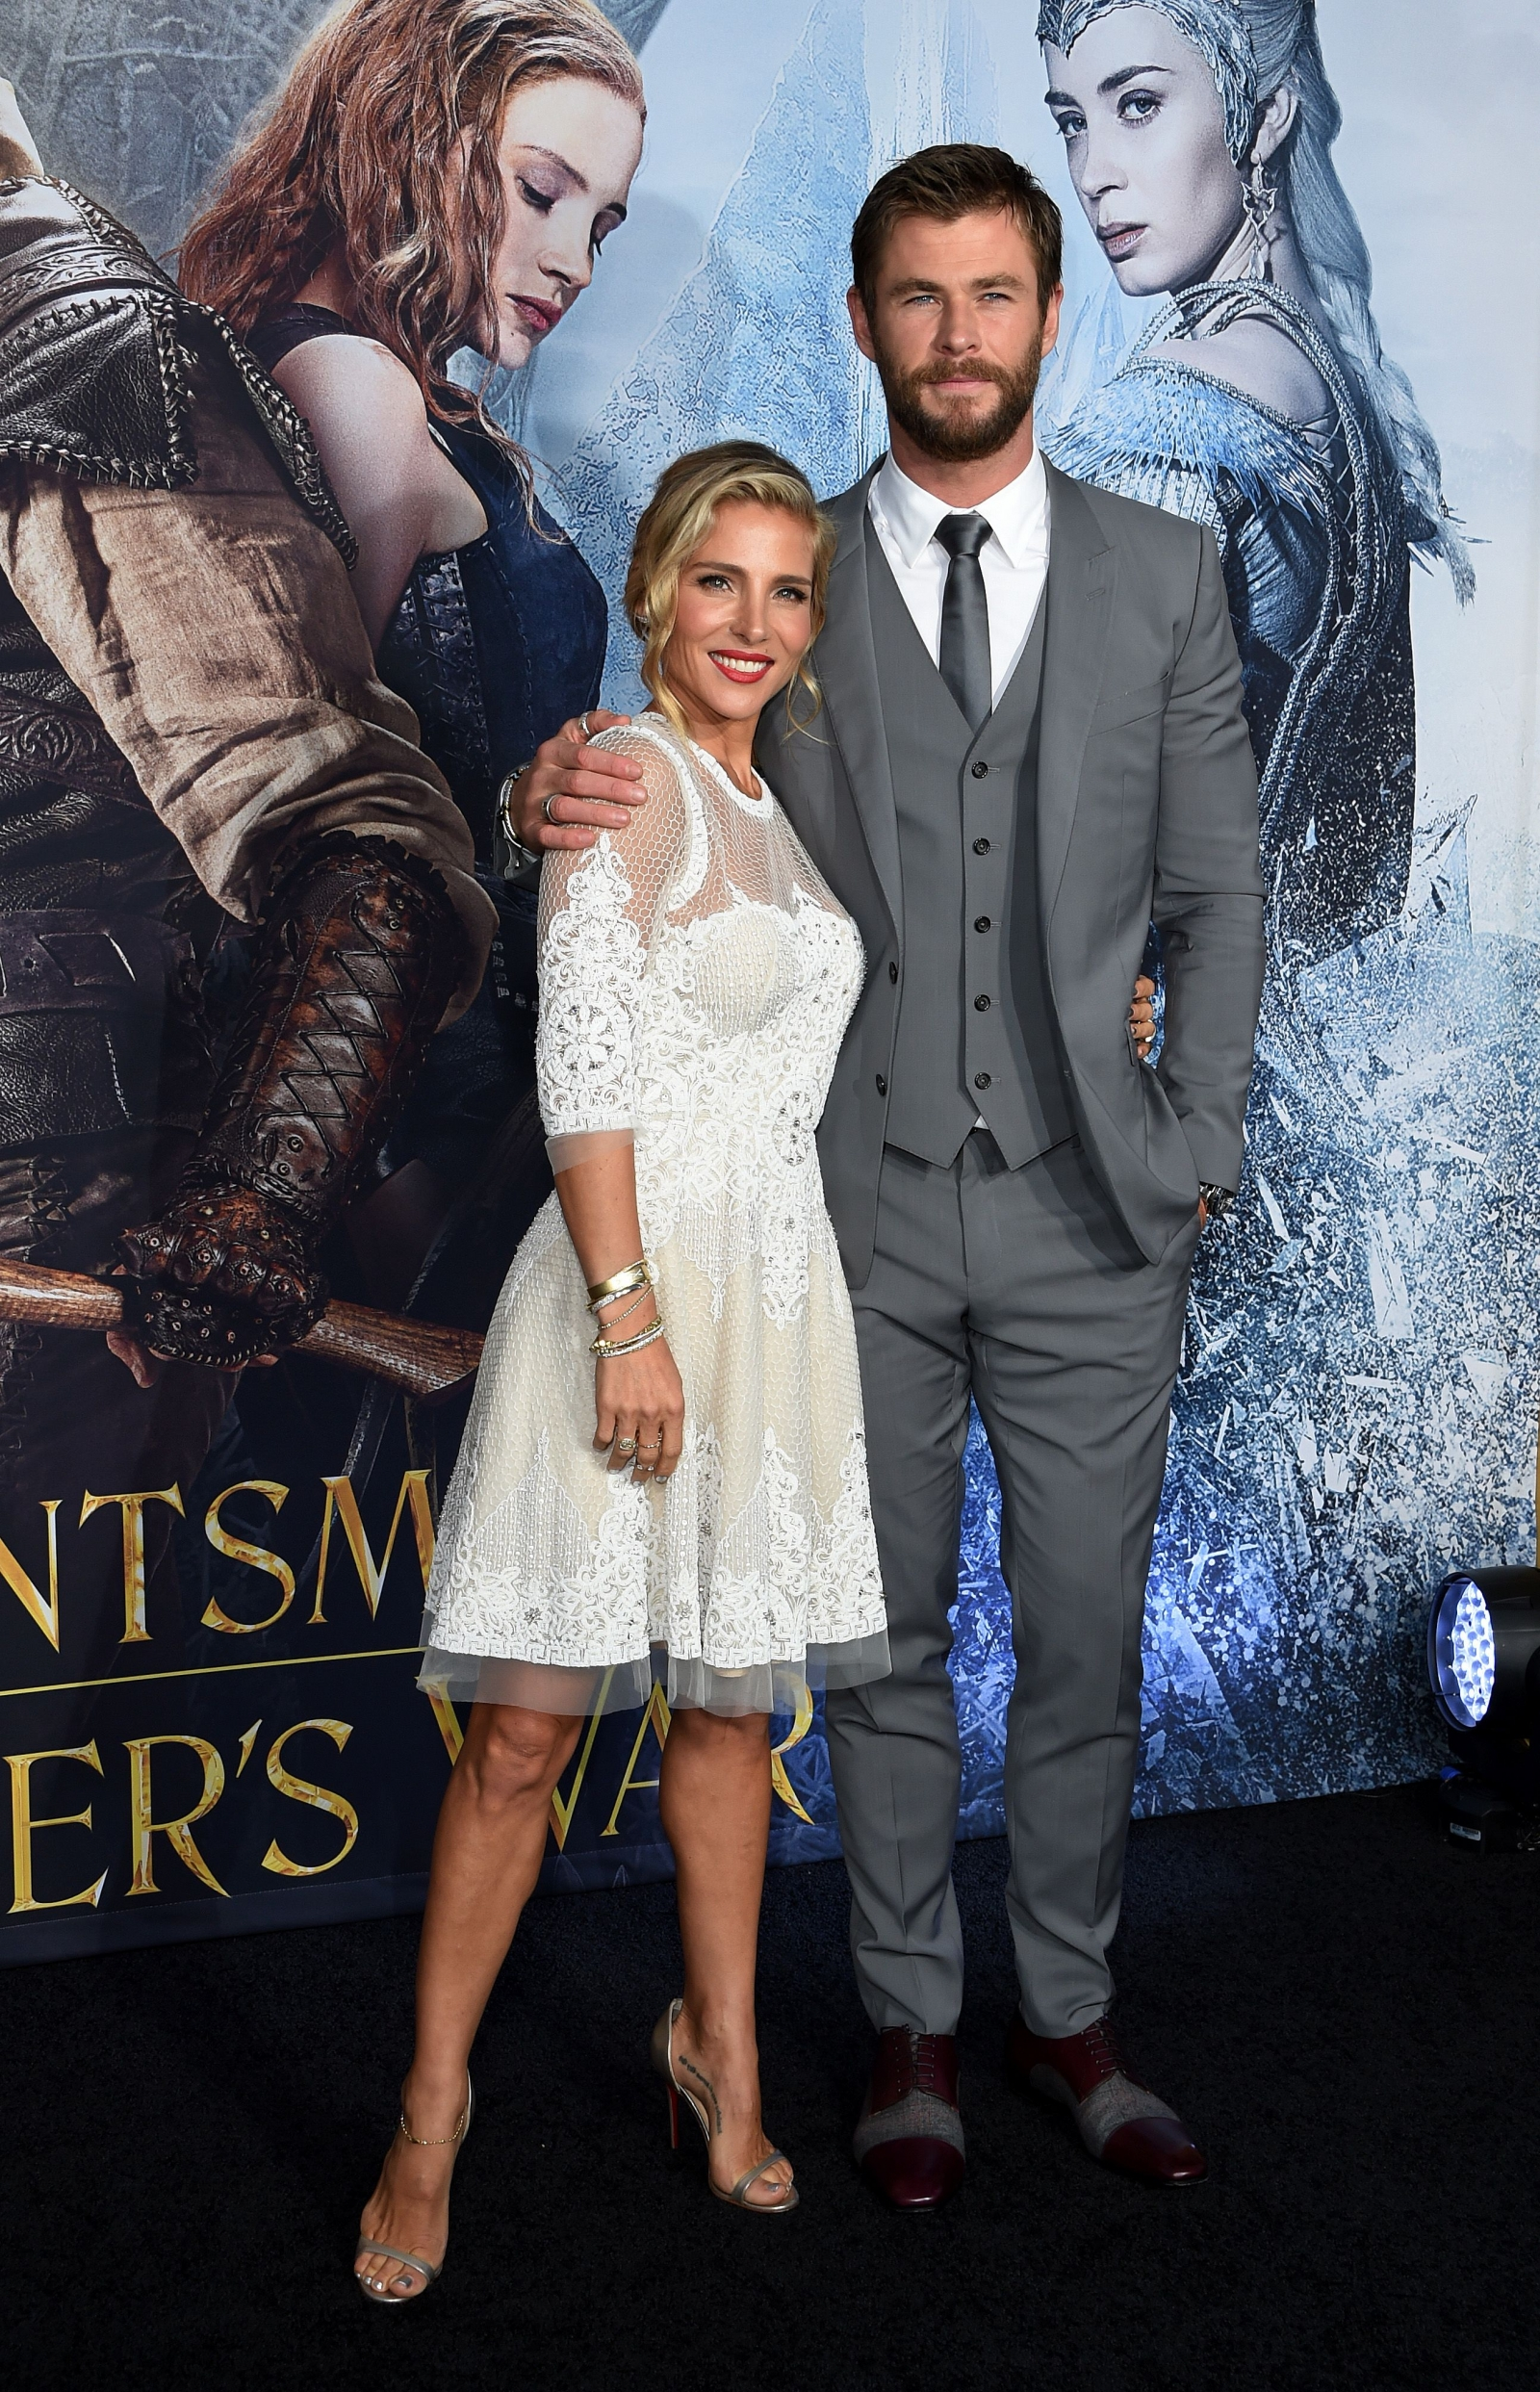 Chris Hemsworth shares cheeky Instagram post with wife